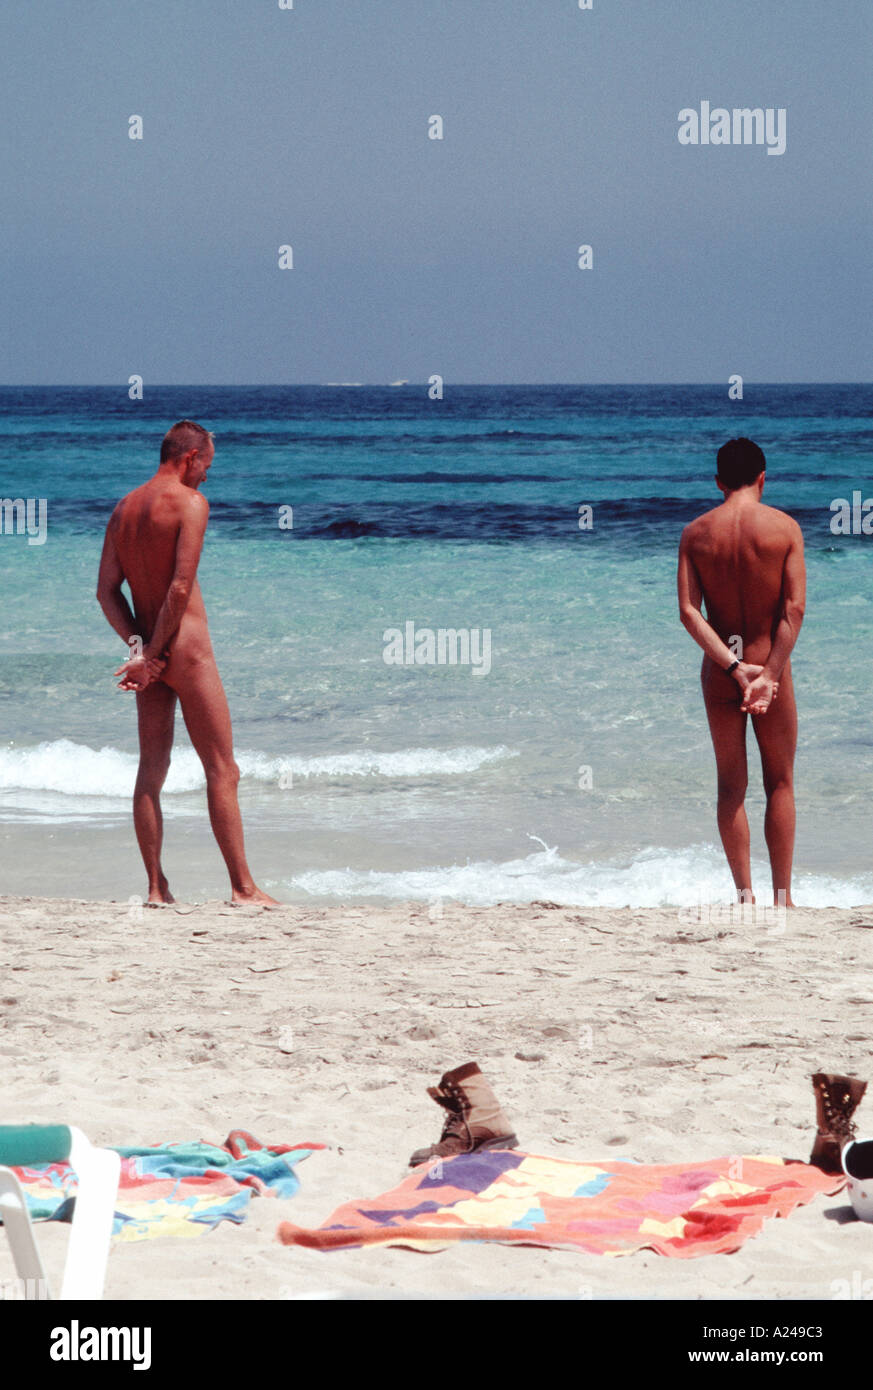 Ibiza Spain Male Couple Standing In Front Of Ocean On Spanish Nudist Beach Scene Platja De Ses Salines